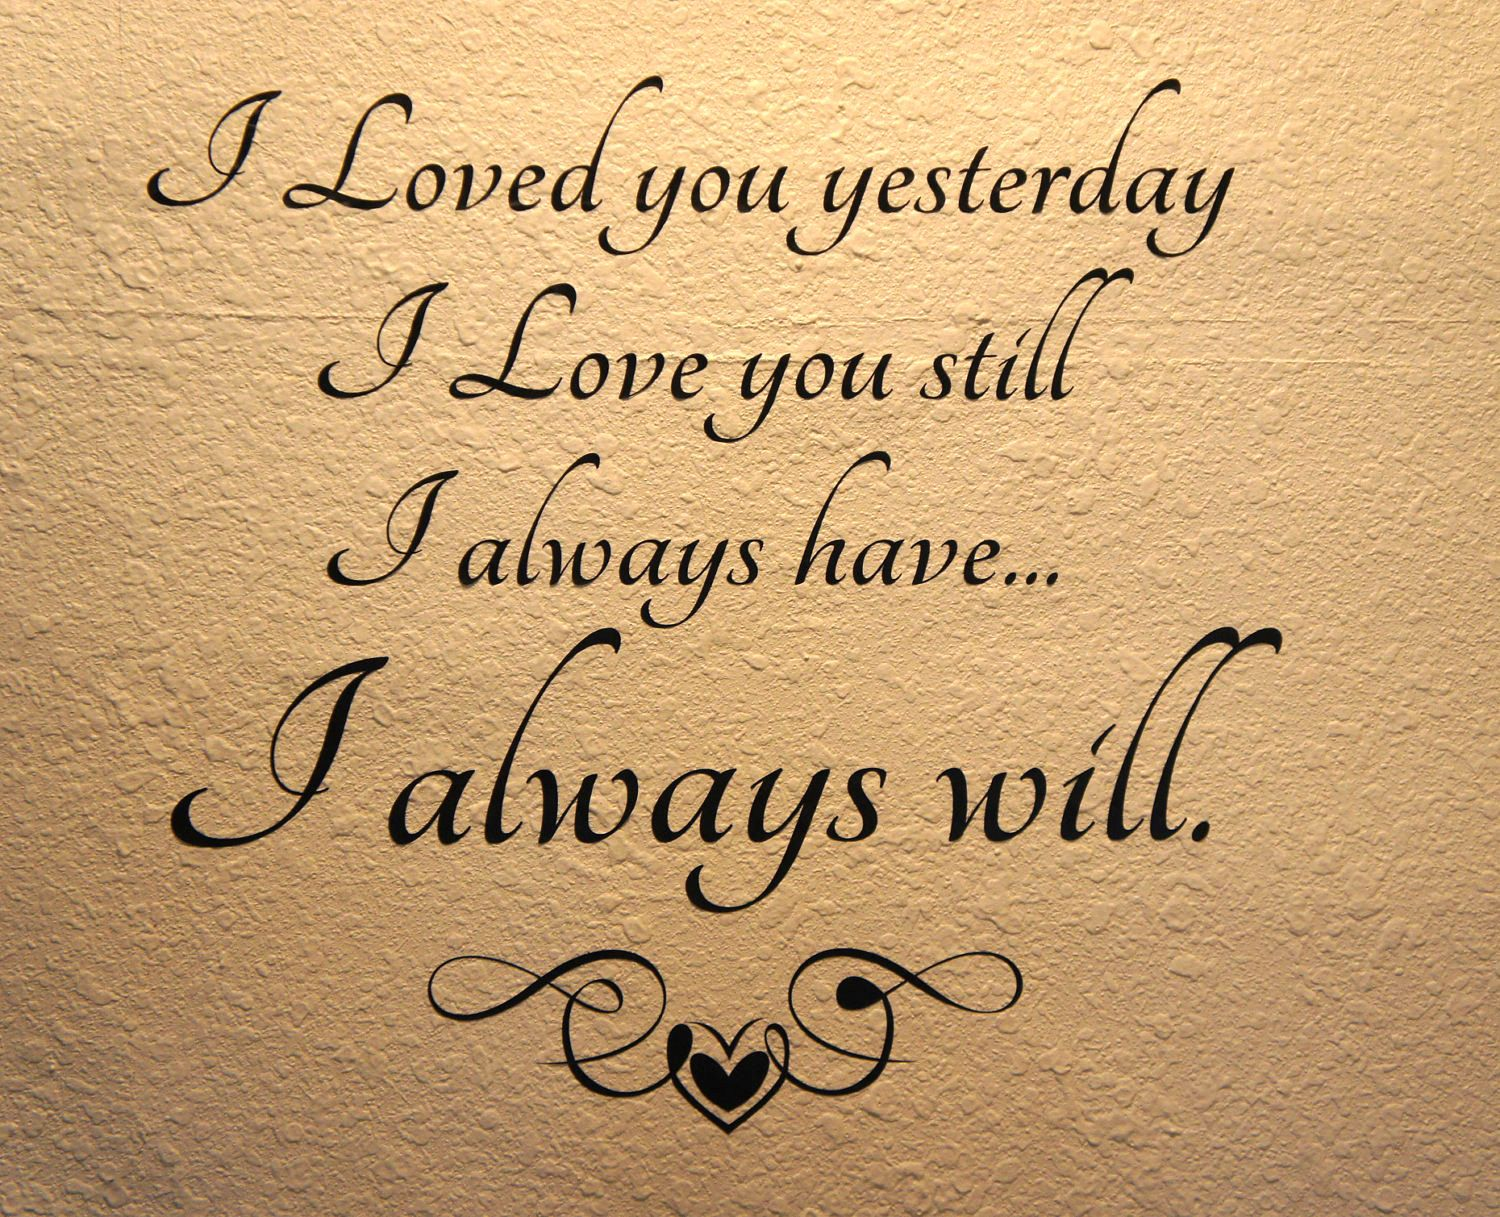 Backgrounds diy wedding quotes of iphone high resolution loved you yesterdaylove stillalways havealways will